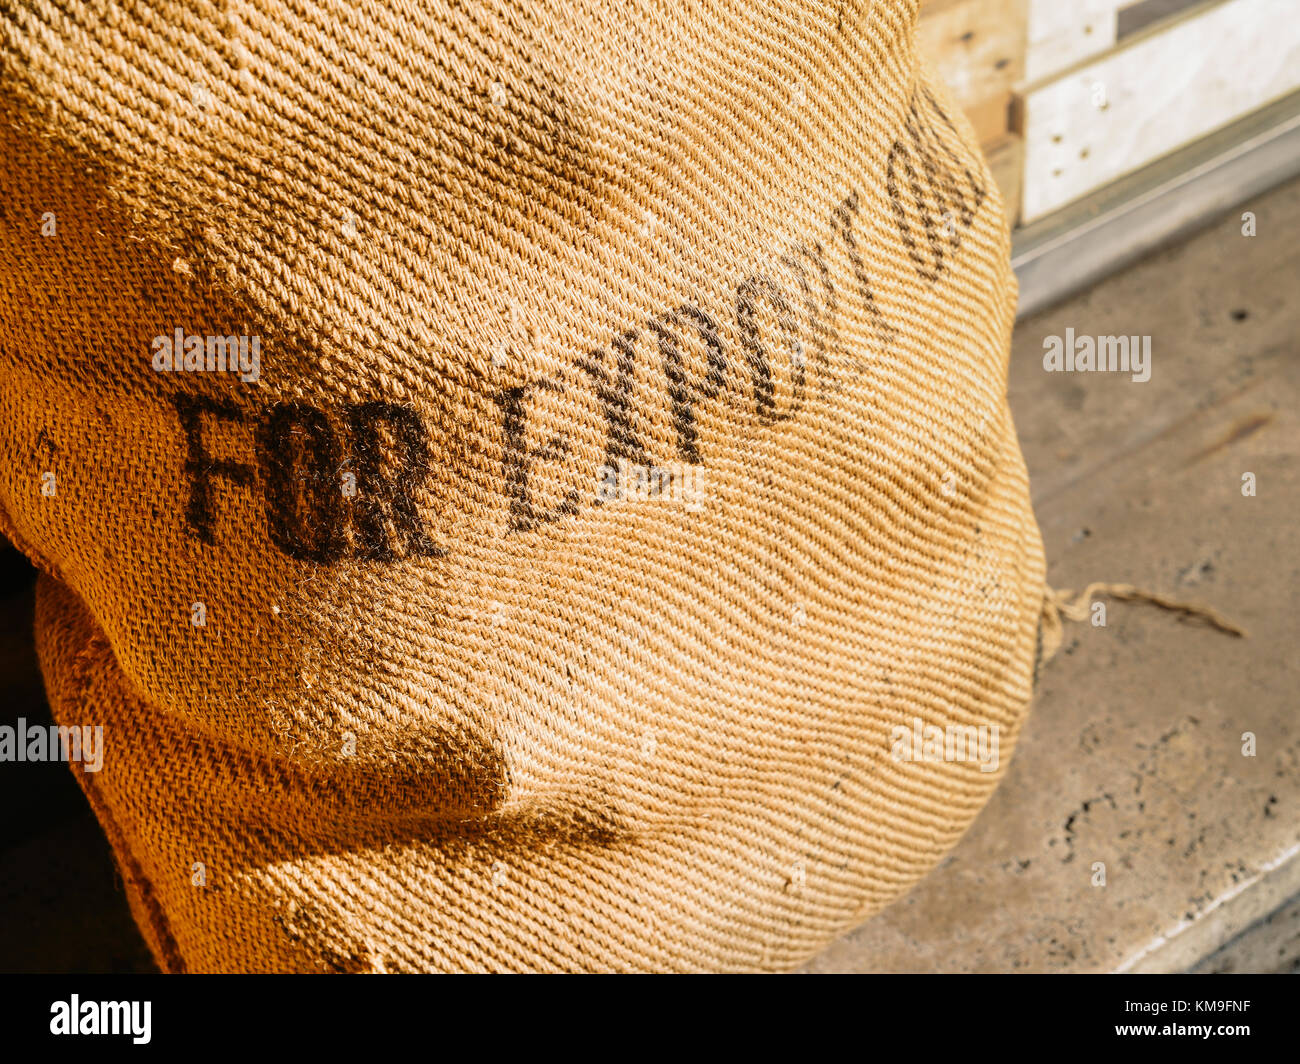 Rustic coffee bean bag with 'For Export Only' written on front - logistics import/export concept - Stock Image